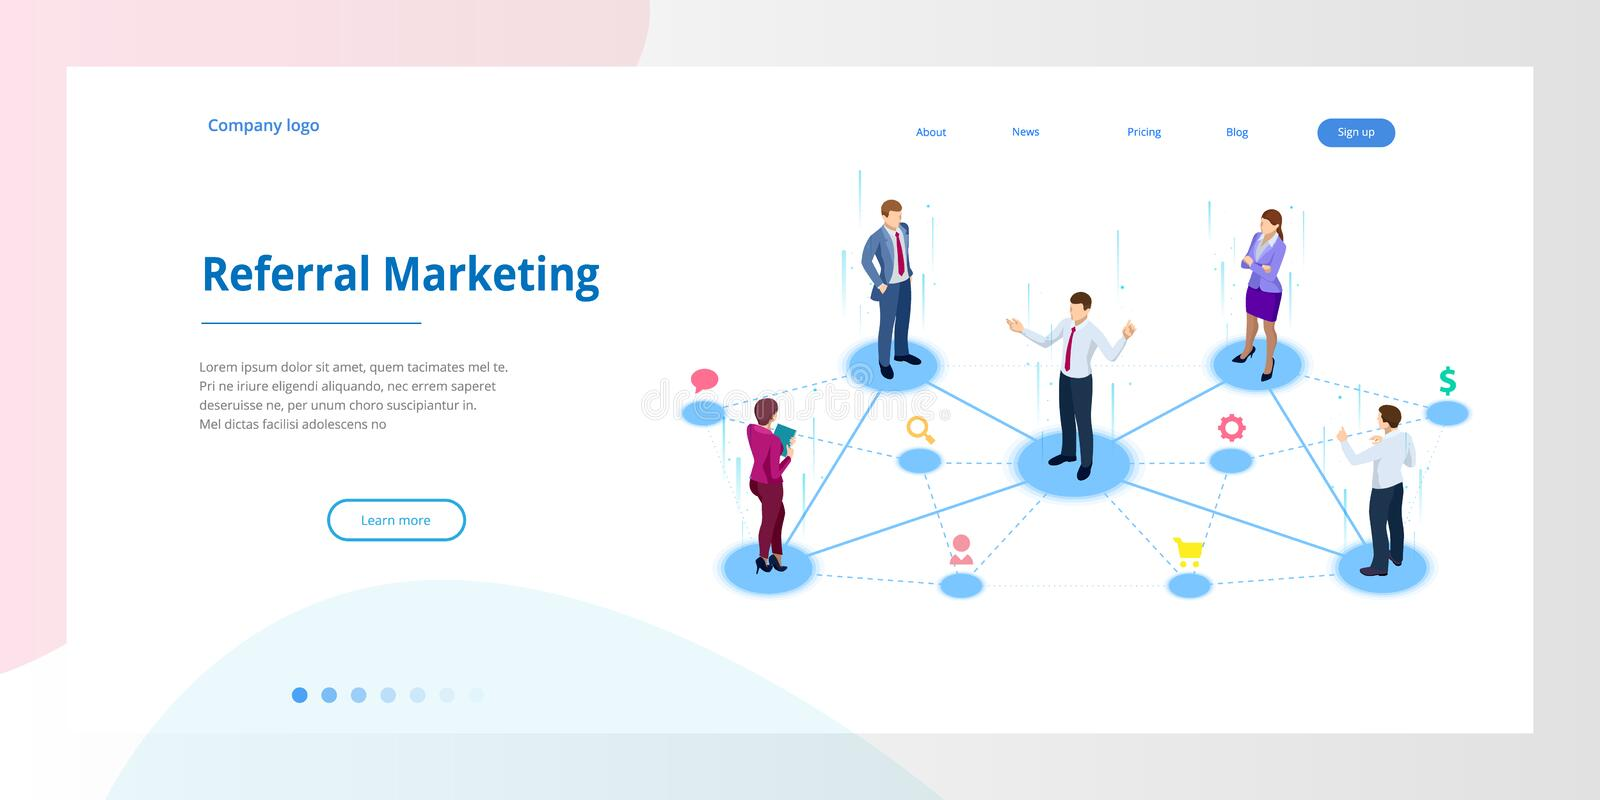 Isometric Referral marketing, network marketing, referral program strategy, referring friends, business partnership. Affiliate marketing concept. Landing page royalty free illustration